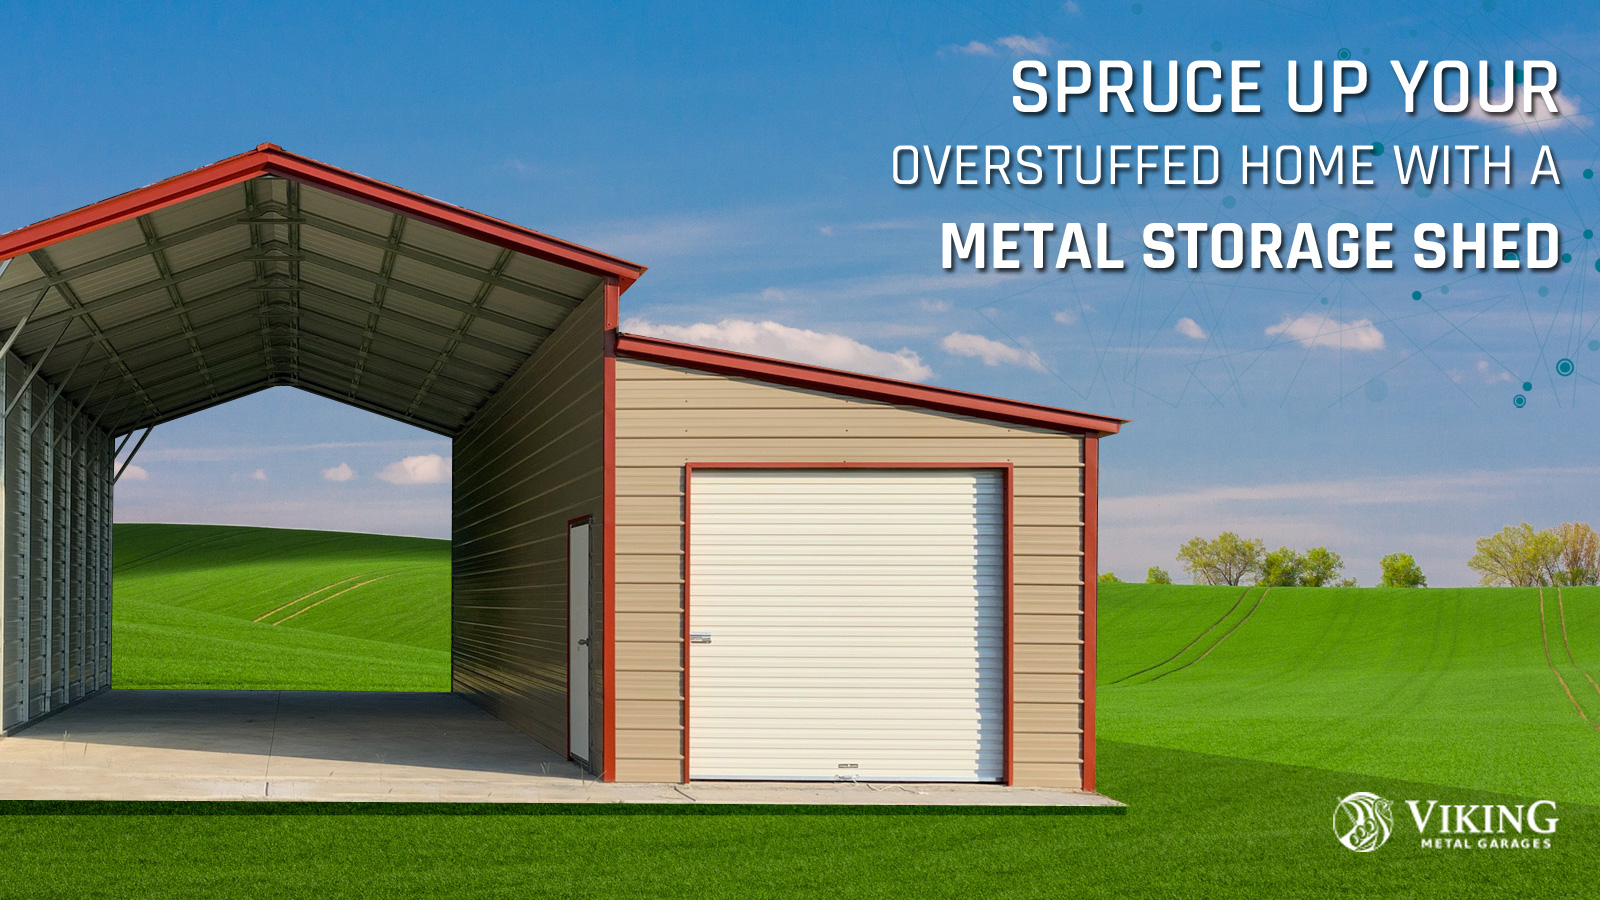 Spruce Up Your Overstuffed Home with a Metal Storage Shed